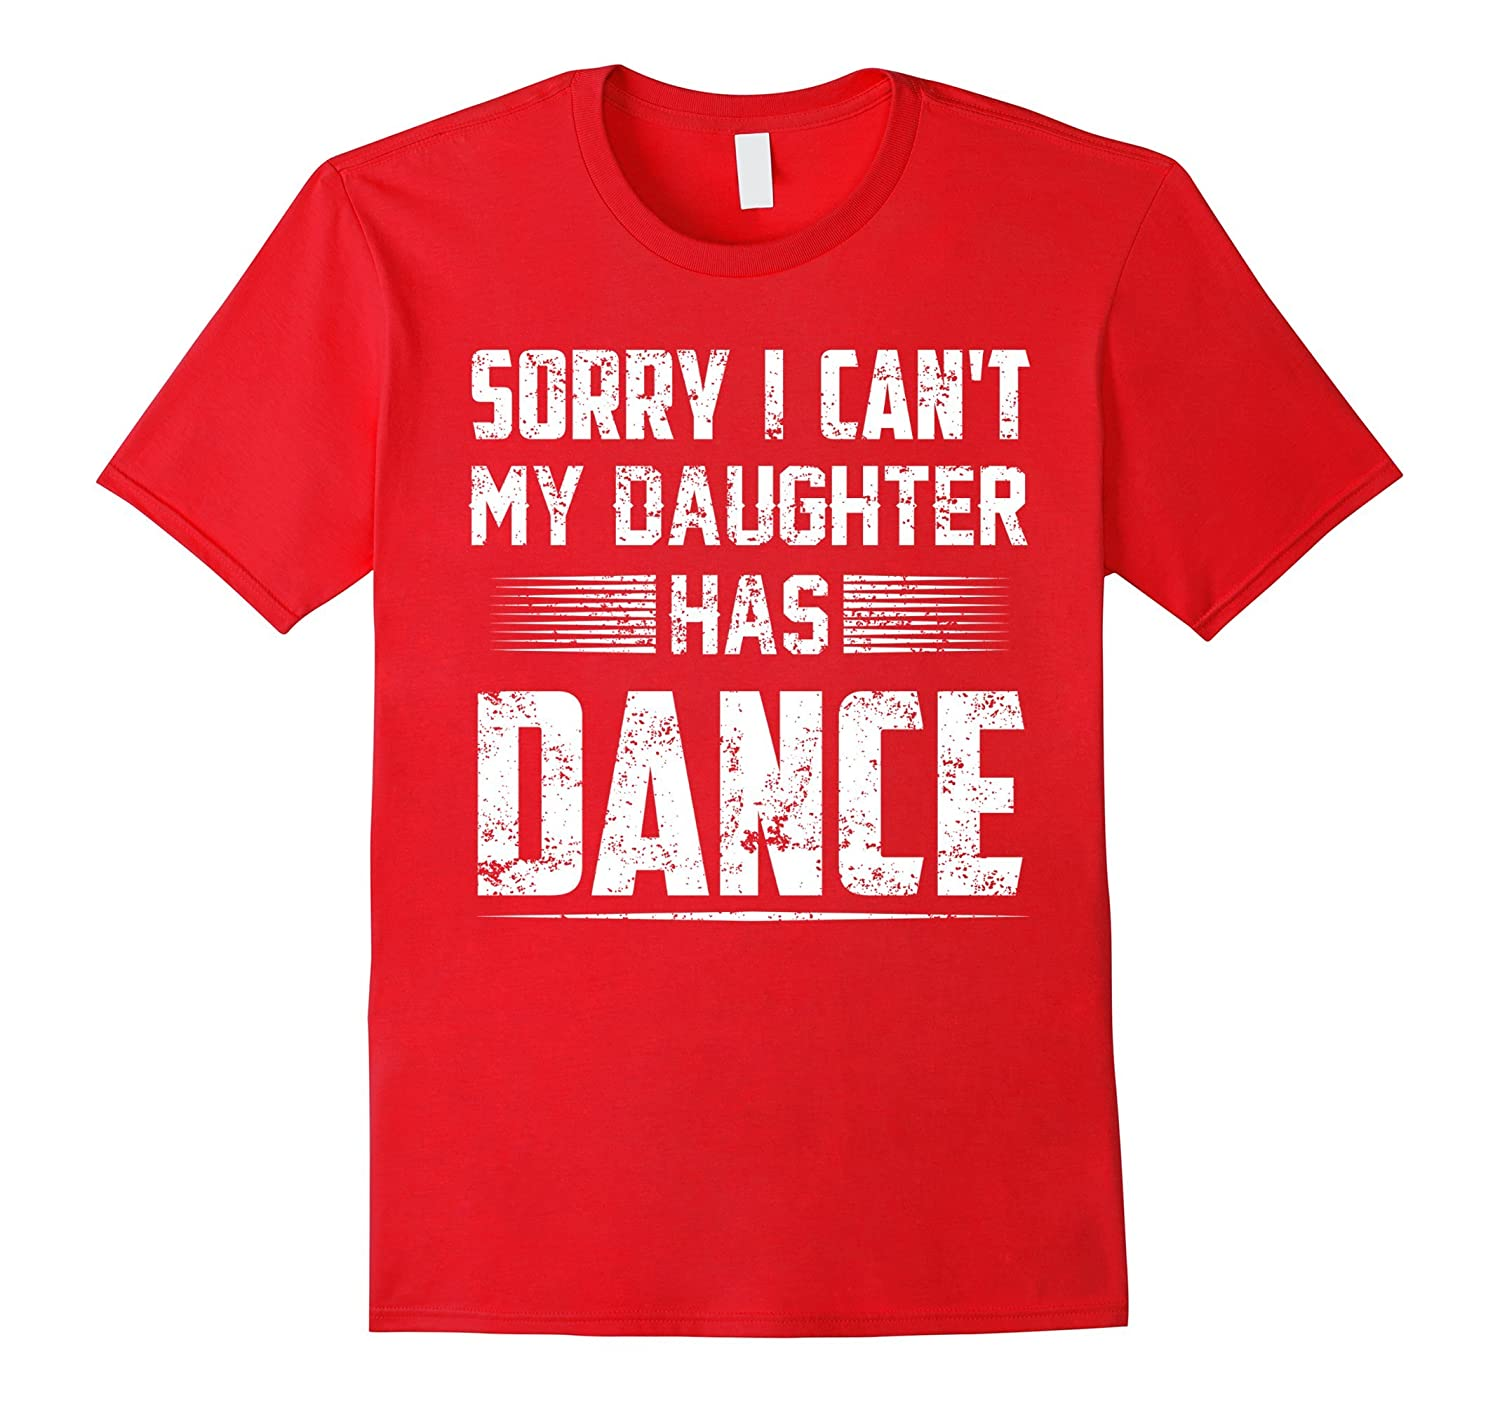 I Cant My Daughter Has Dance T-Shirt Dance Mom Gift-Vaci